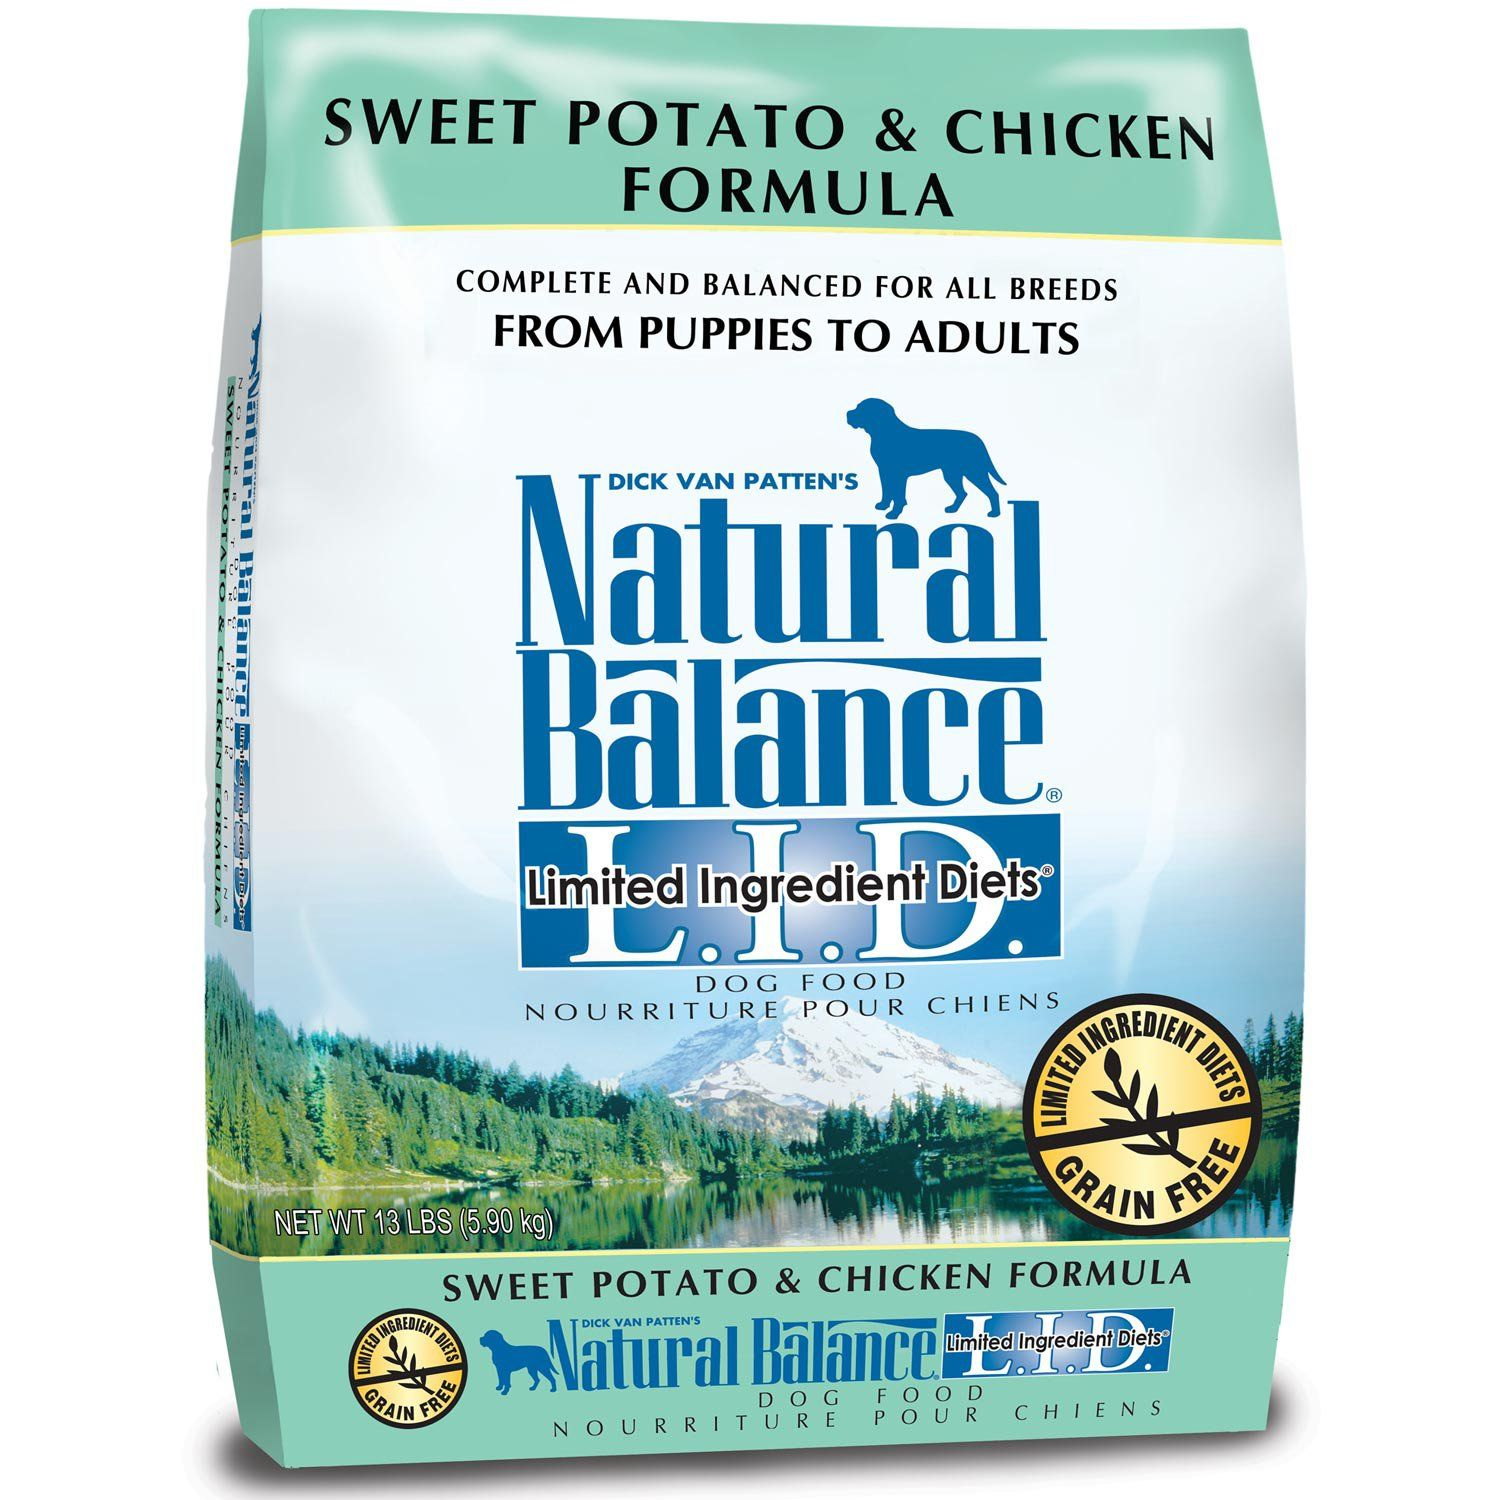 Natural+Balance+Limited+Ingredient+Diets+Sweet+Potato+